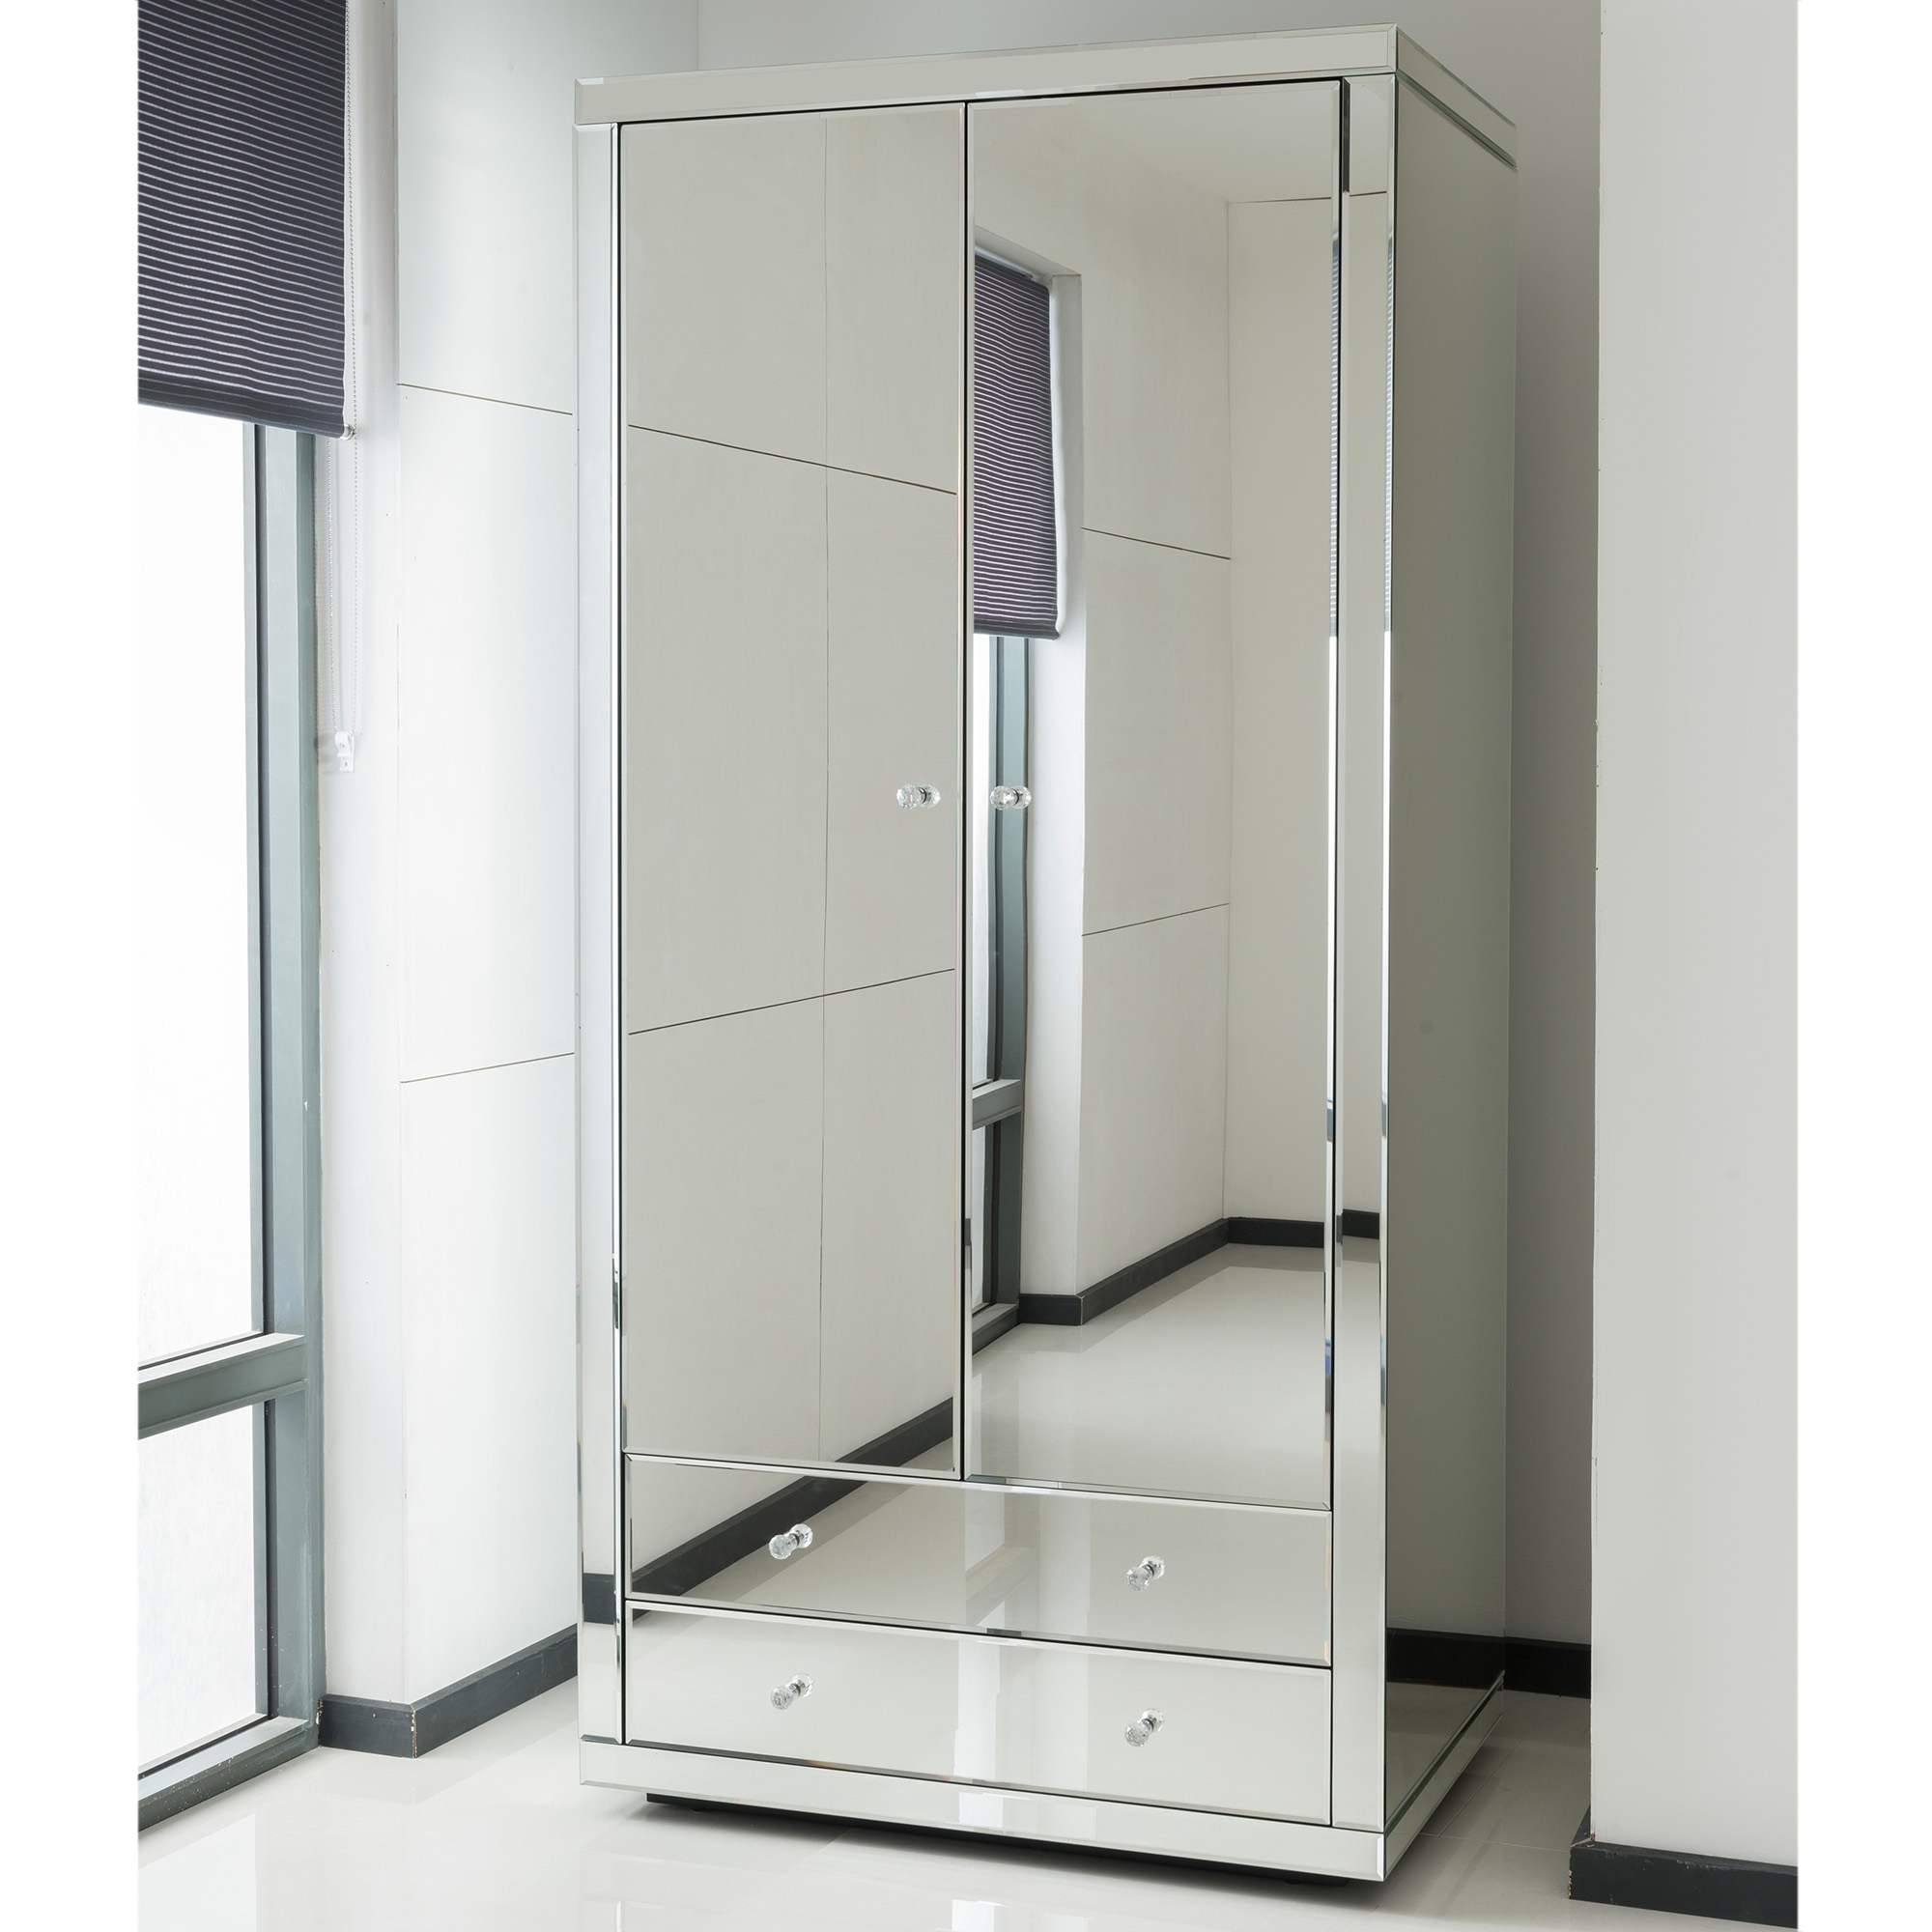 White 3 Door Mirrored Wardrobes With Regard To Current 3 Door Mirrored Wardrobe – Mirrored Wardrobe Designs For Your (View 14 of 15)